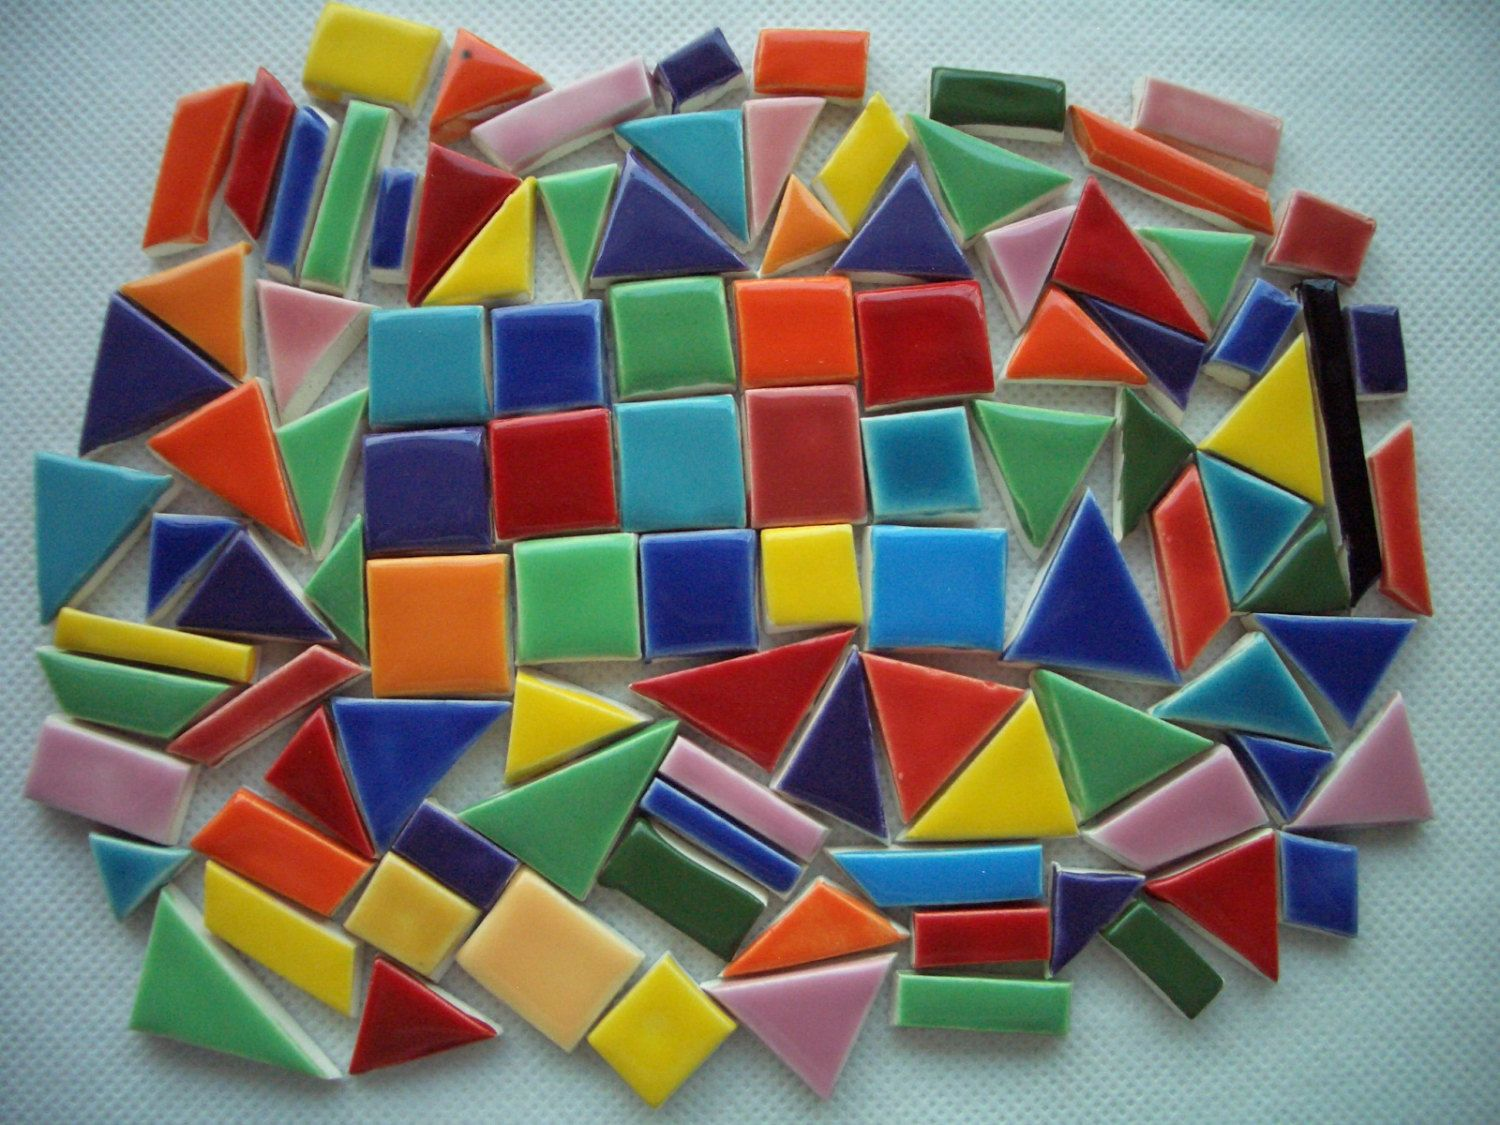 Ch101 chicklets 101 pcs fun colorful tiny tiles ceramic ch101 chicklets 101 pcs fun colorful tiny tiles ceramic mosaic tiles dailygadgetfo Images